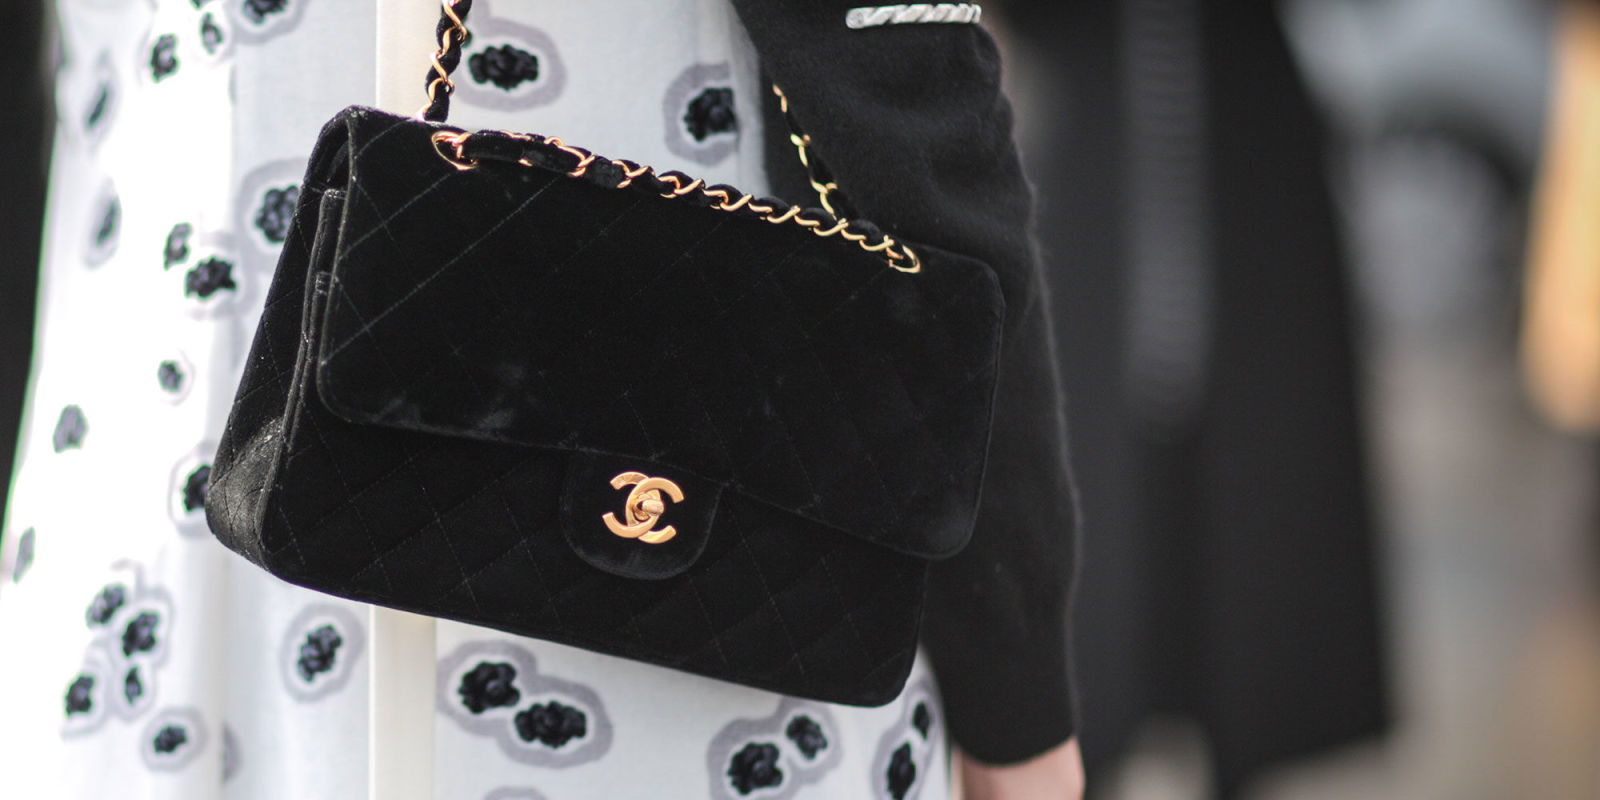 The Best Investment Bags To Buy Chanel Prada Dior